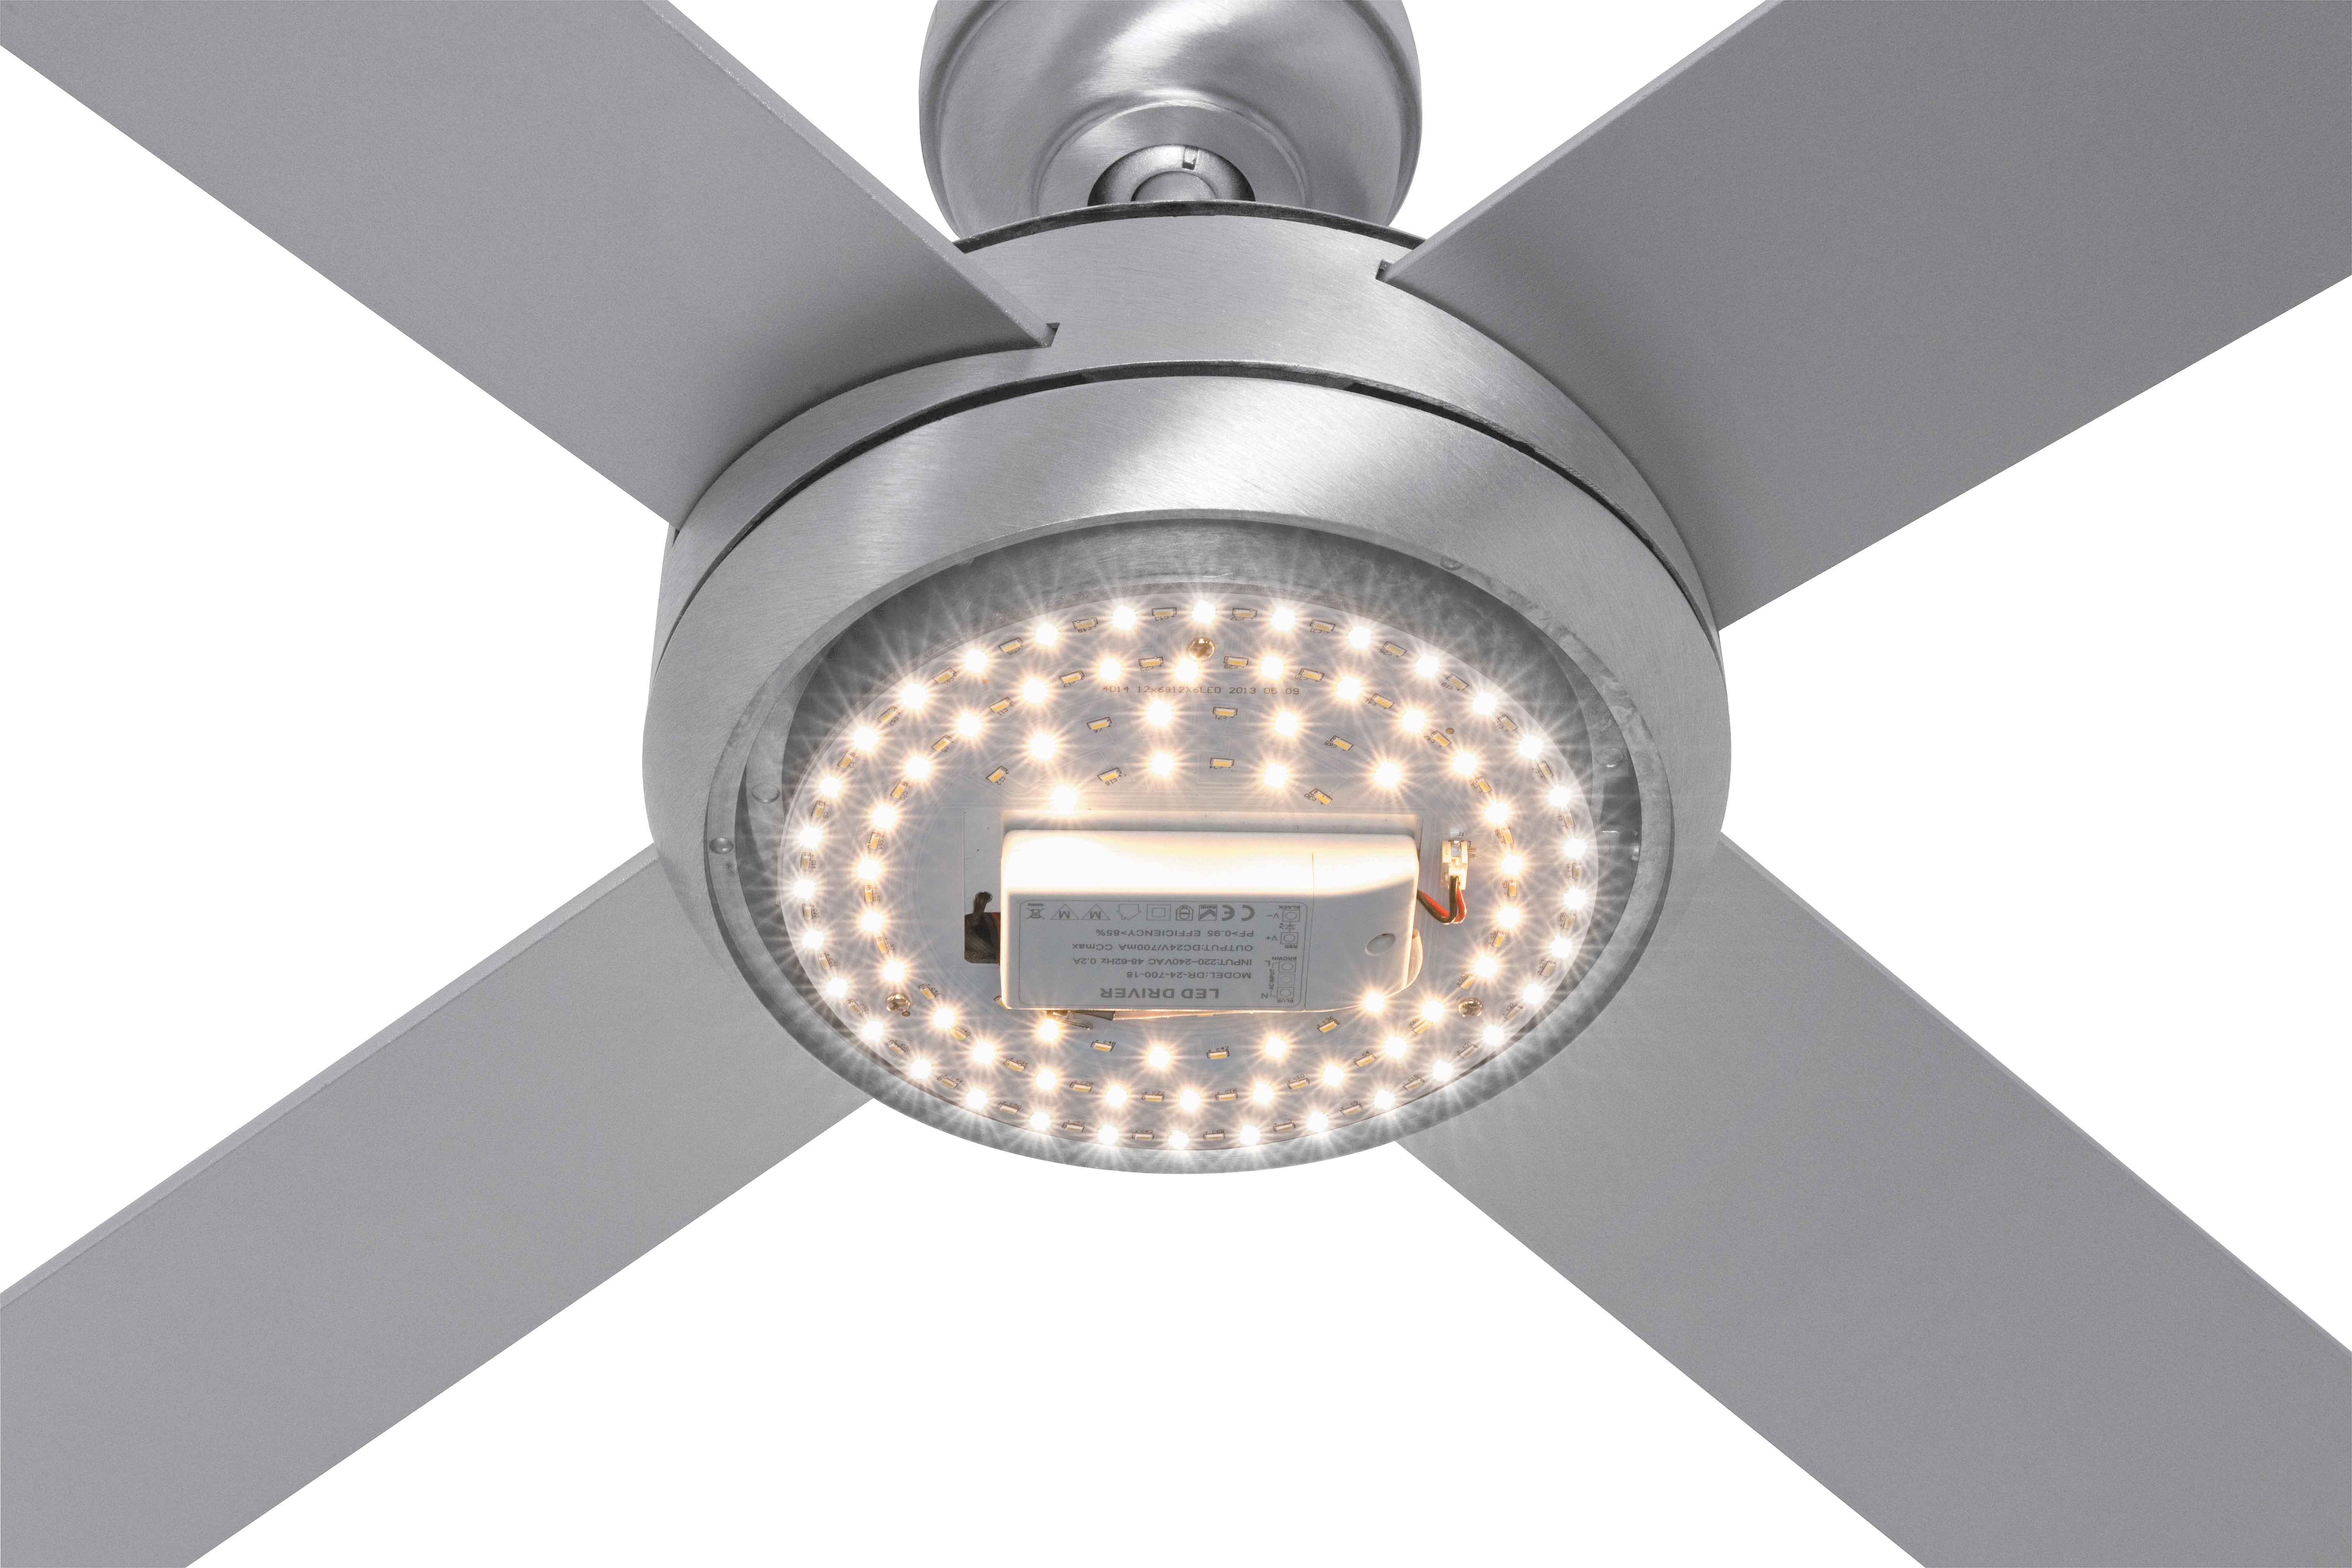 lights new craftmade furniture kit eurowindowriverparks shades light amazing fixture of fan ceiling